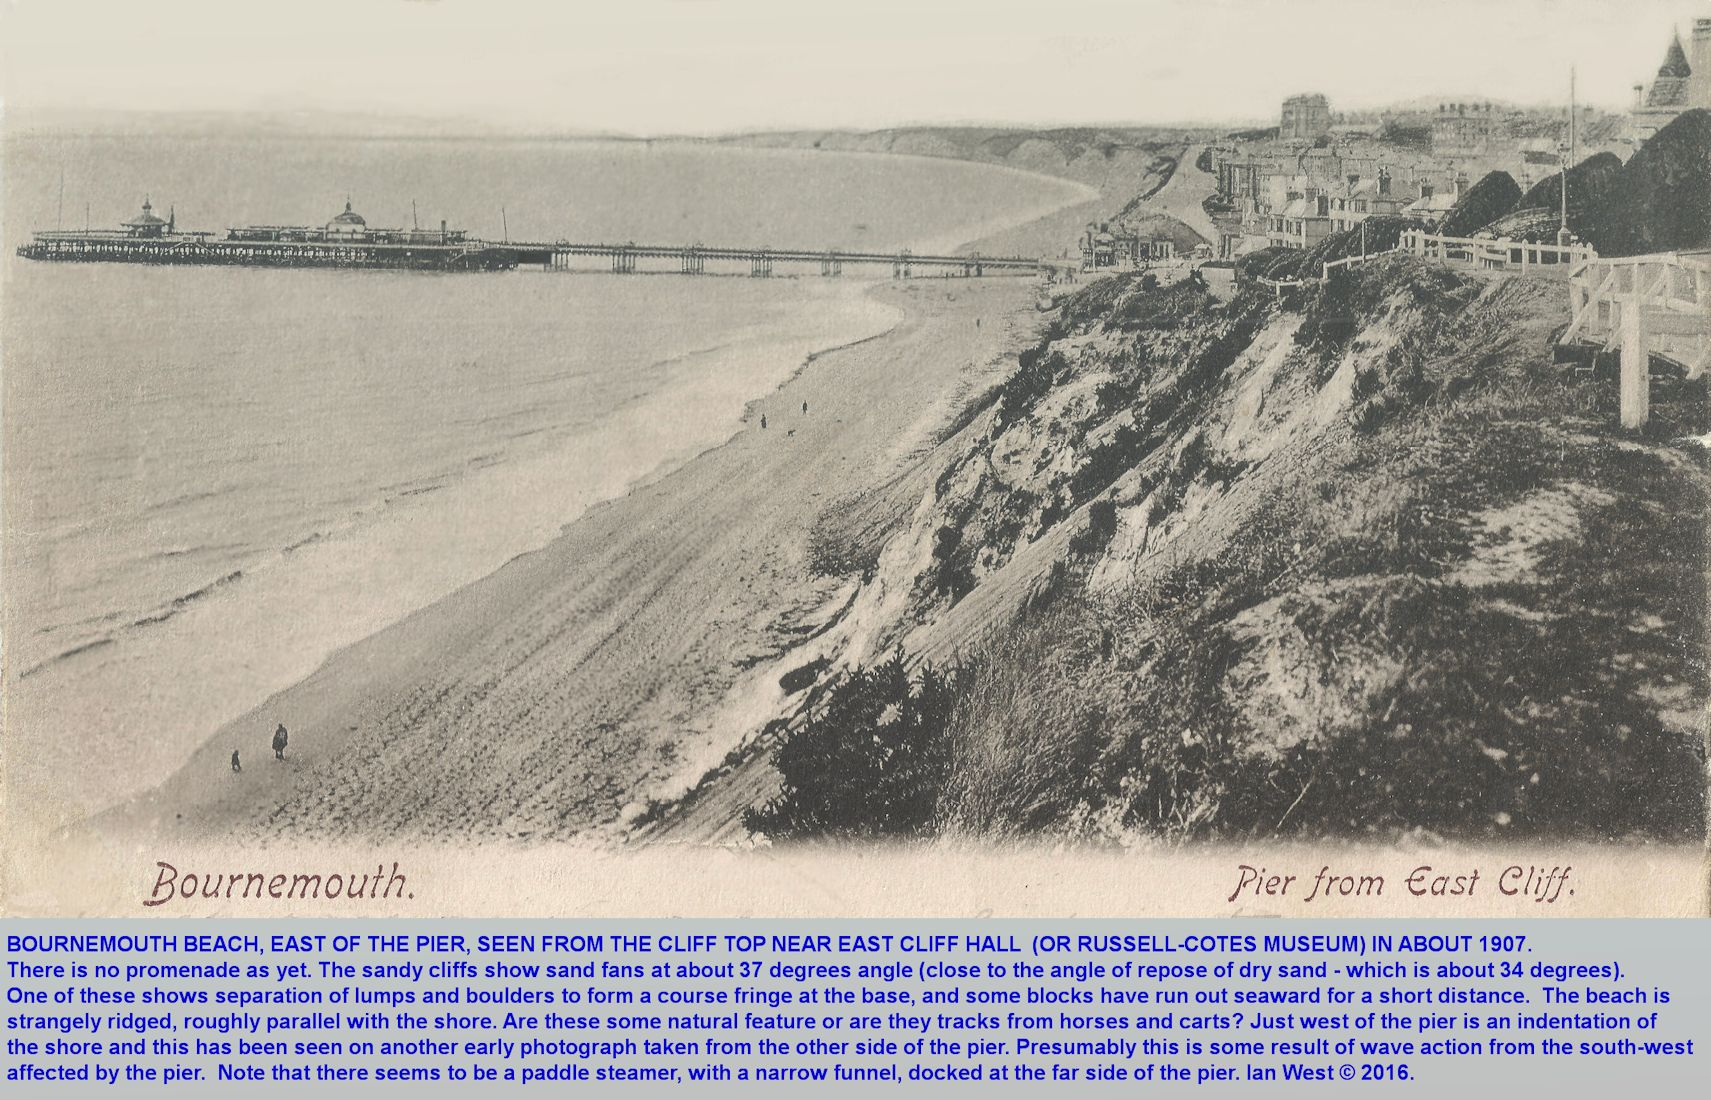 An old photograph of Bournemouth Pier, the beach and the cliffs from a viewpoint on the East Cliff, Bournemouth, Dorset, near the present Russell-Cotes Museum, taken round about 1905 and before the promenade was constructed